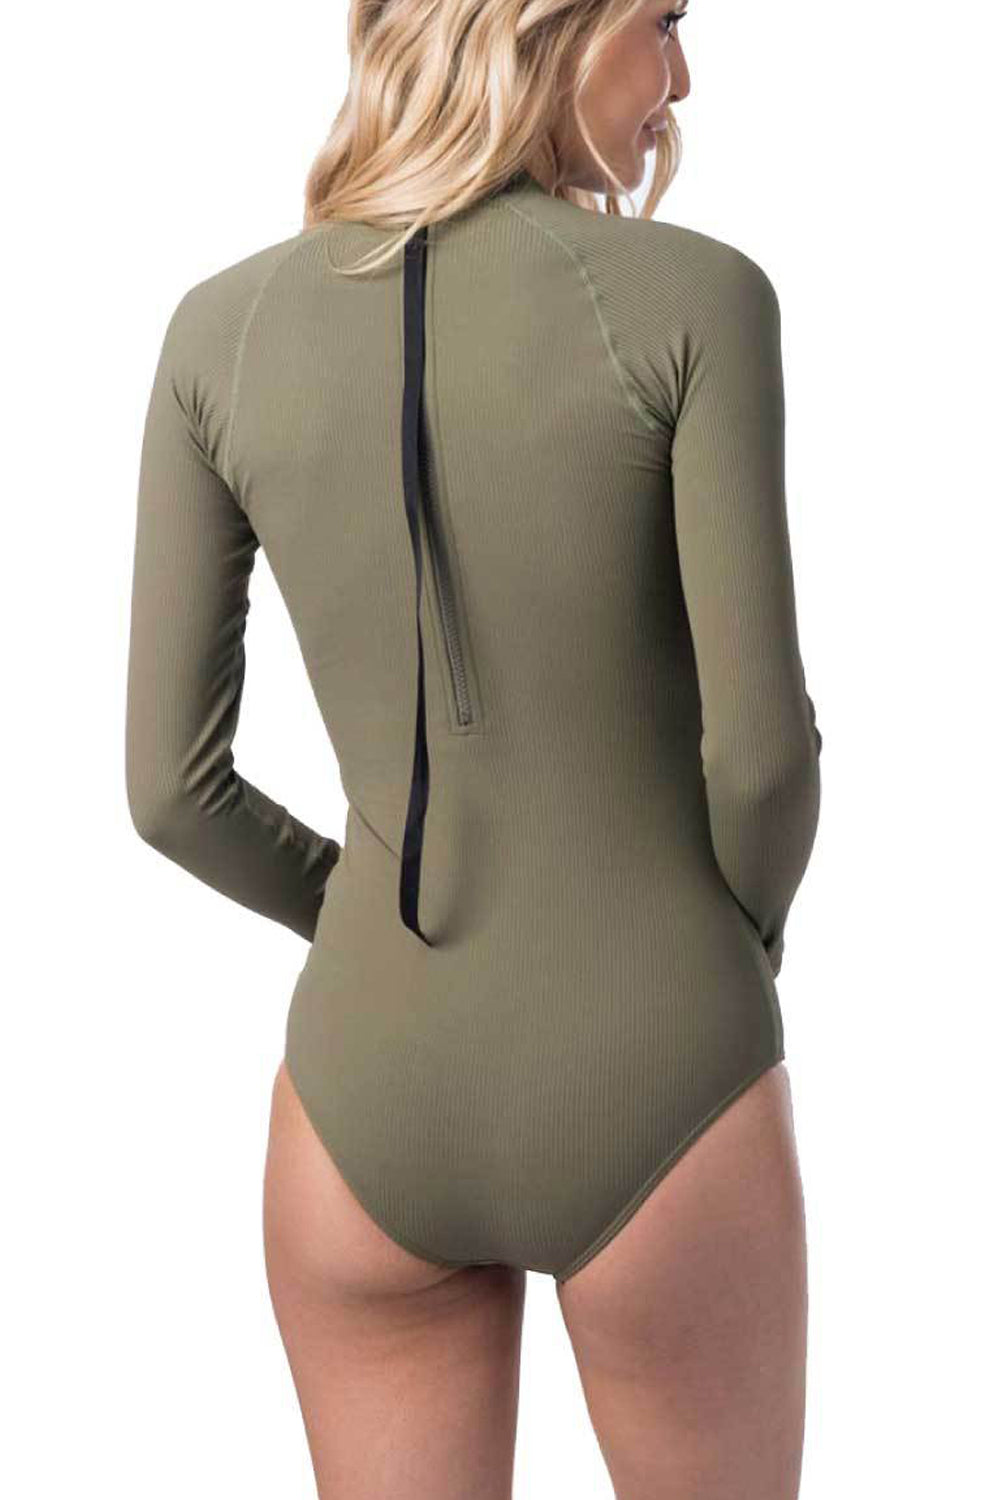 Rip Curl G-Bomb Long Sleeve One Piece Ribbed Back Zip UV Surf Suit